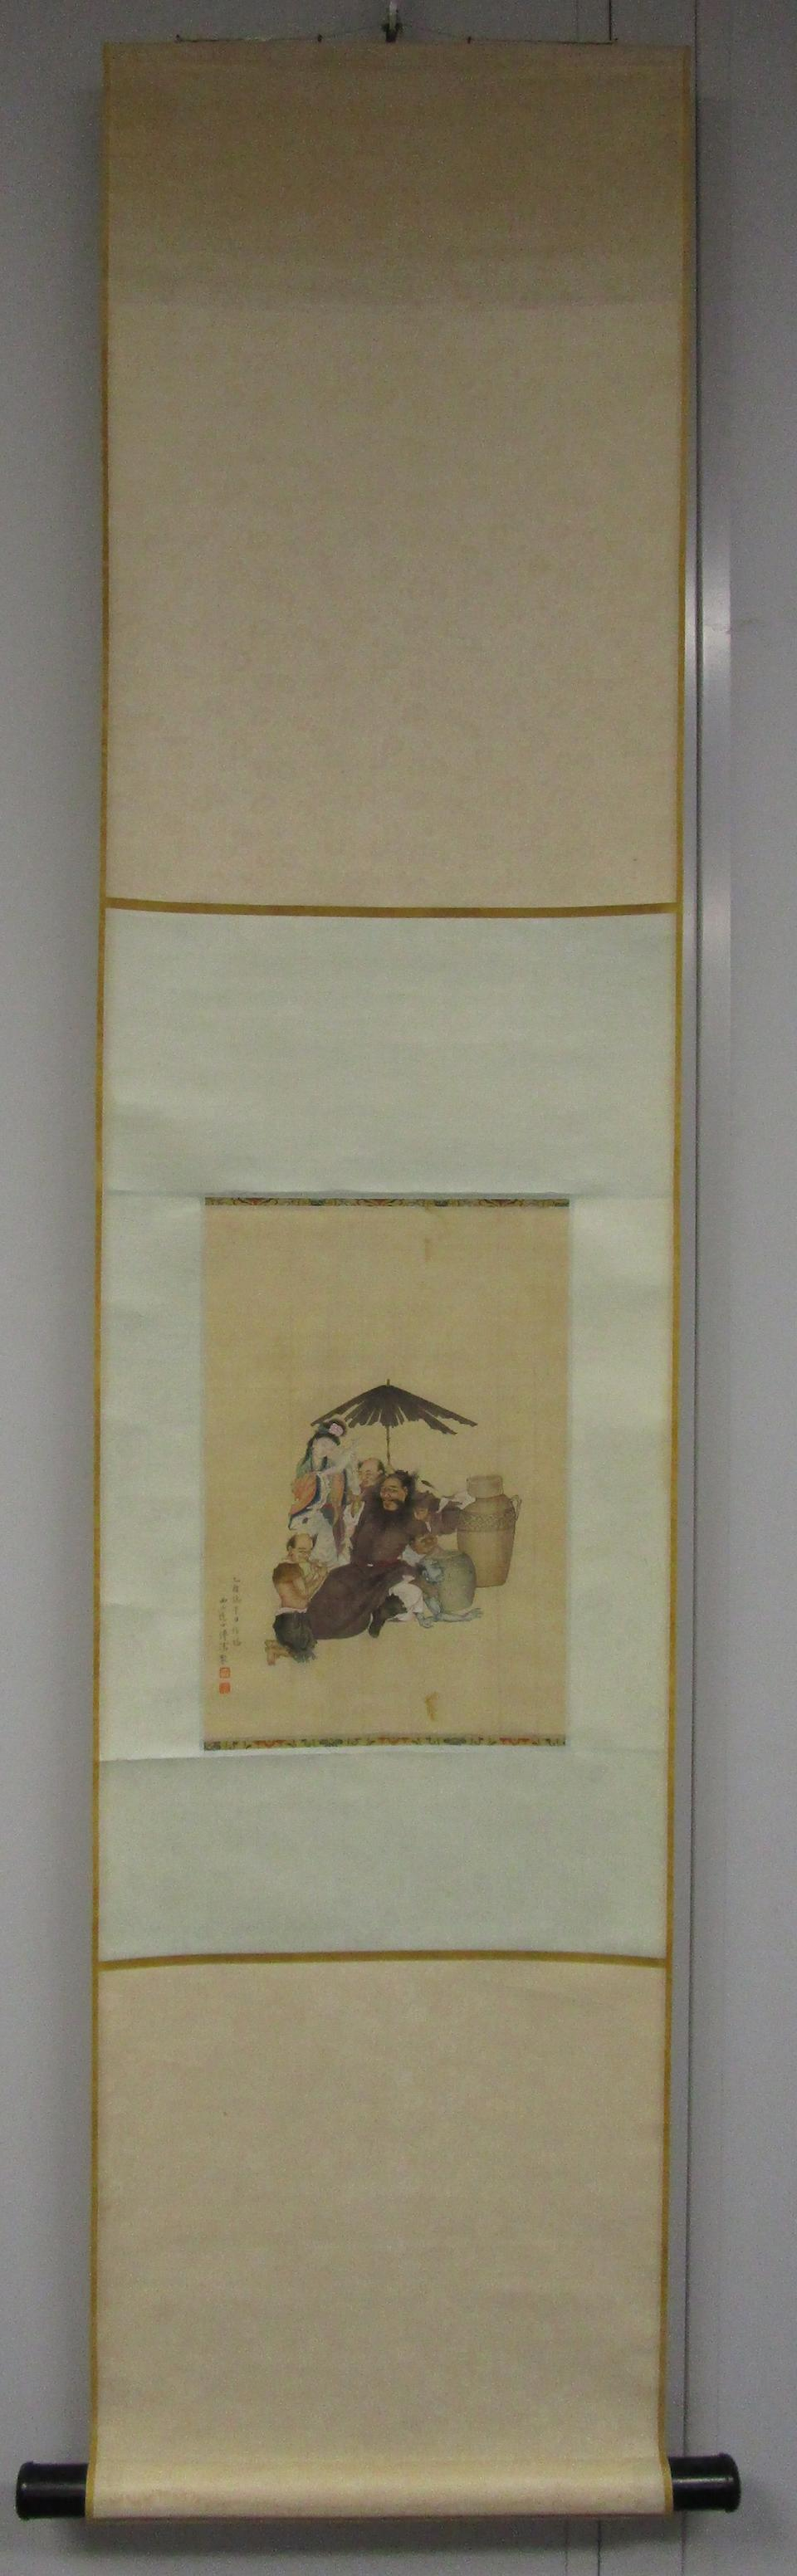 Pu Ru (1896-1963) Zhong Kui and Attendants, 1945